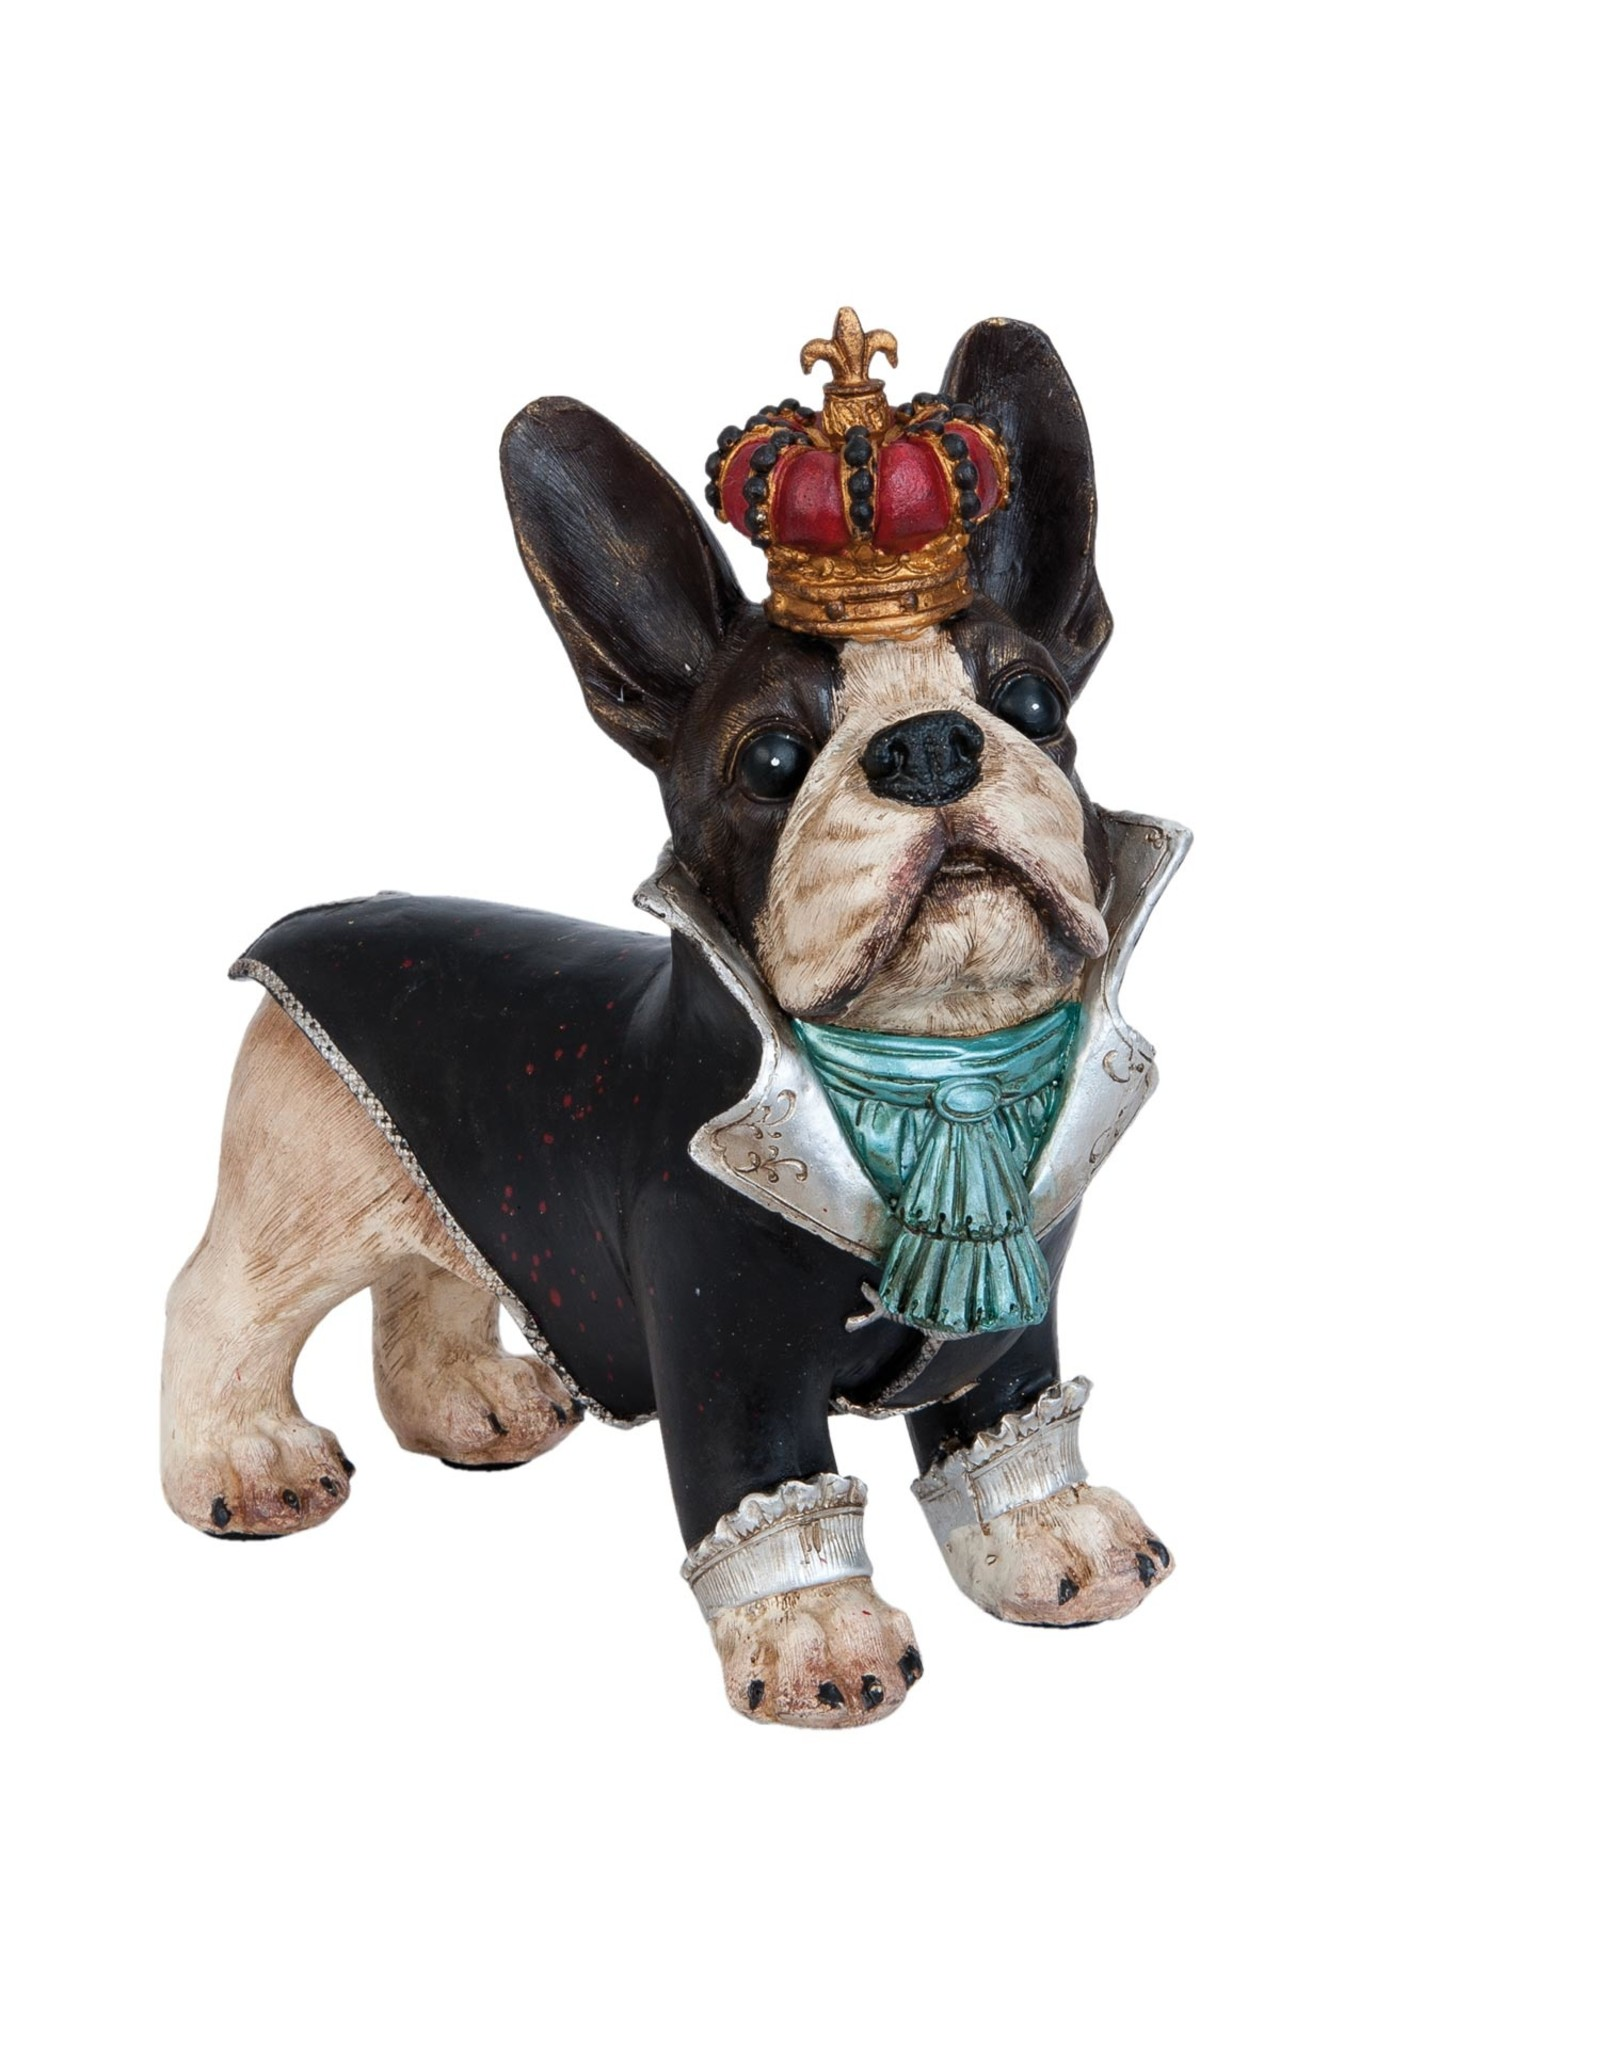 Trukado Giftware Figurines Collectables - Bulldog with crown figurine 25cm